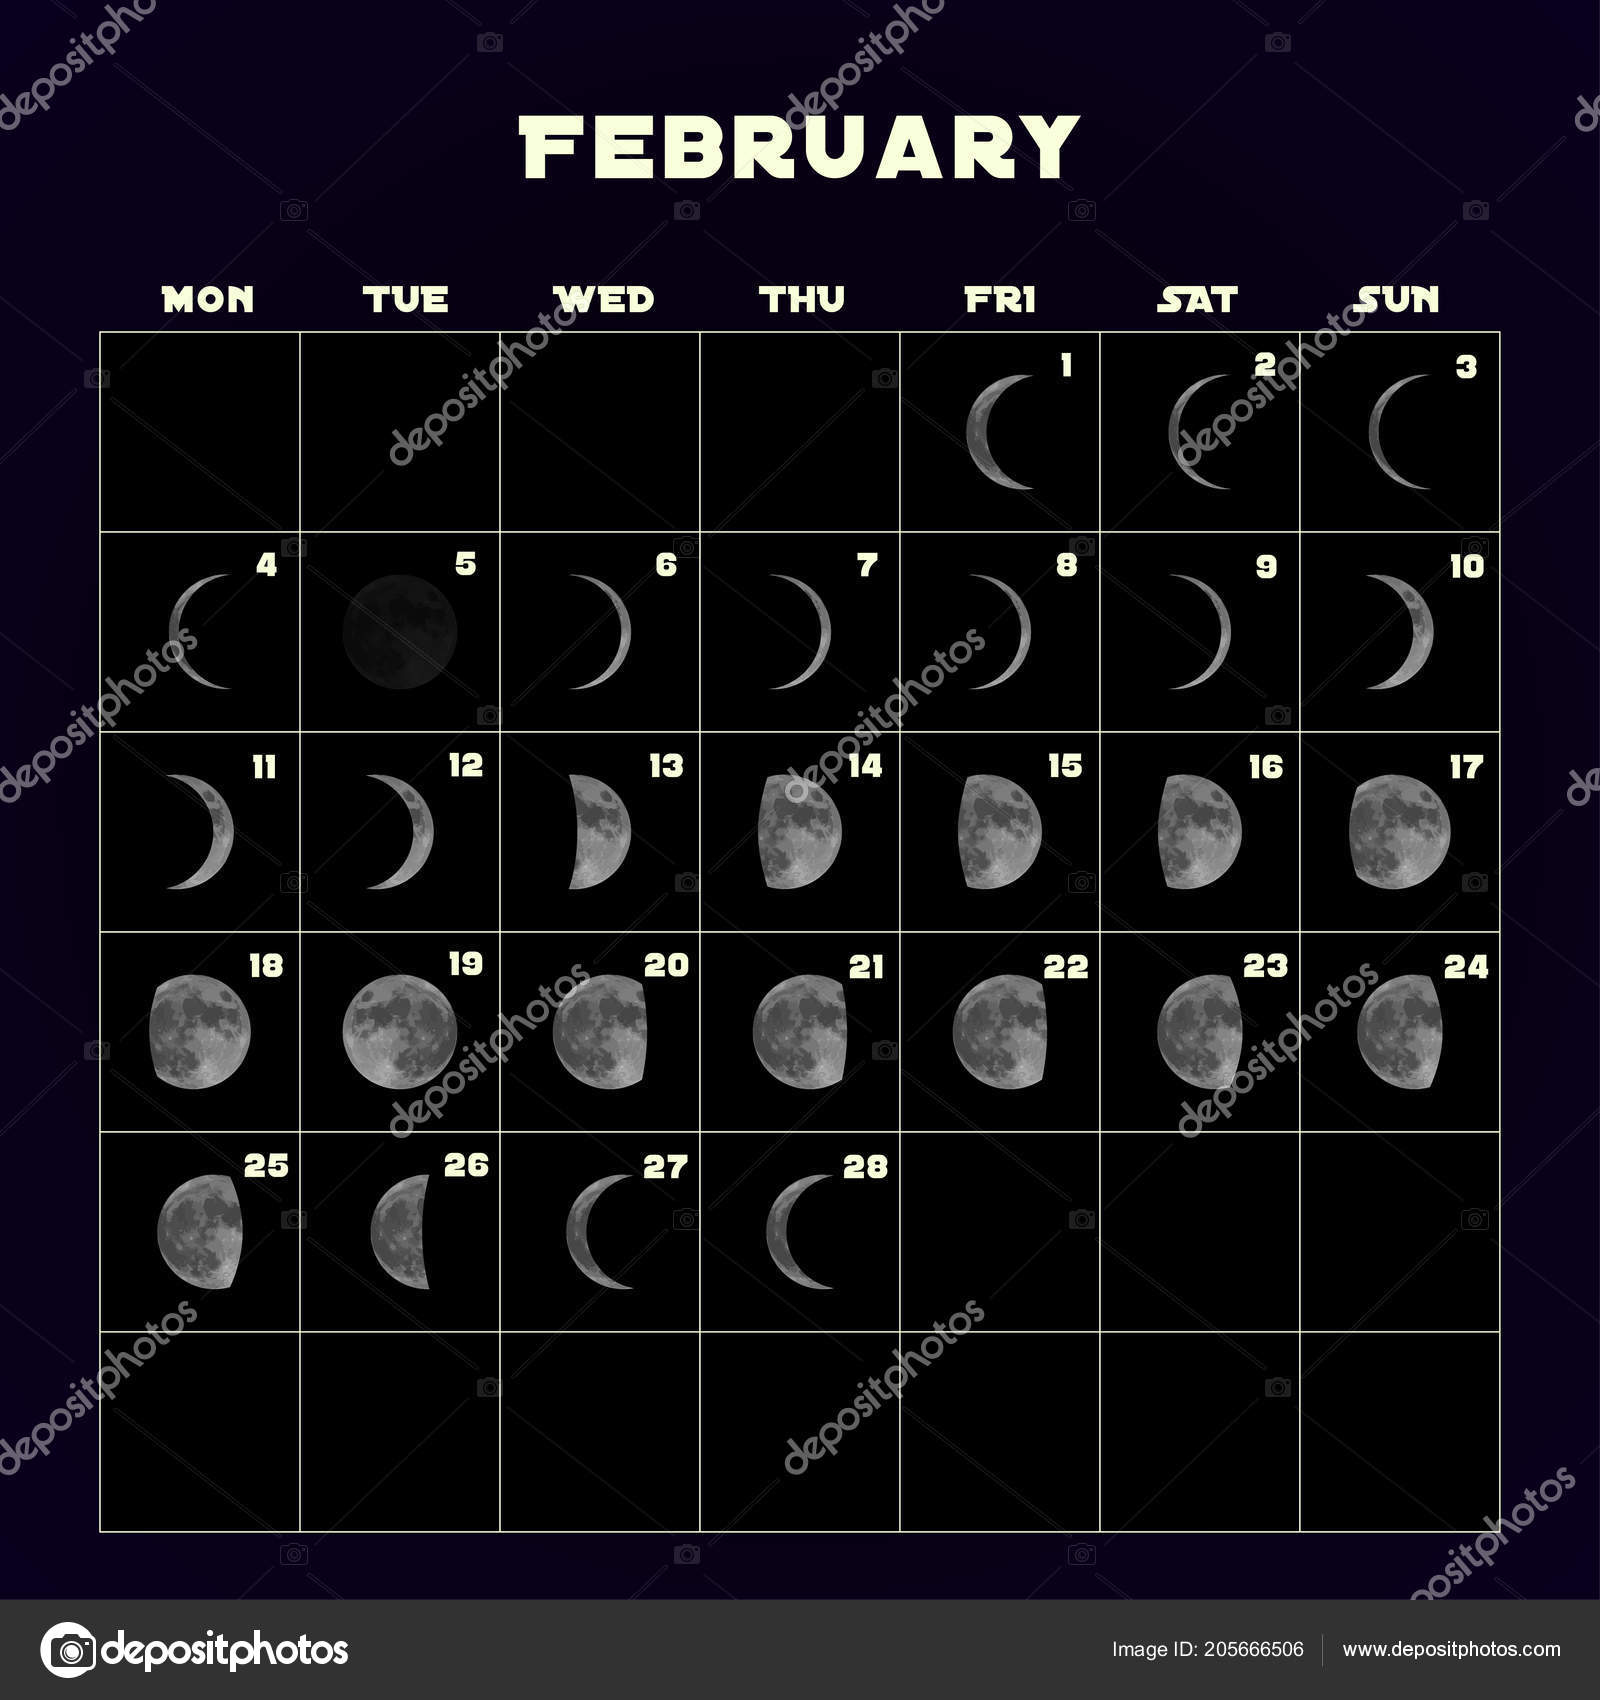 February 2019 Moon Phase Calendar Moon phases calendar for 2019 with realistic moon. February